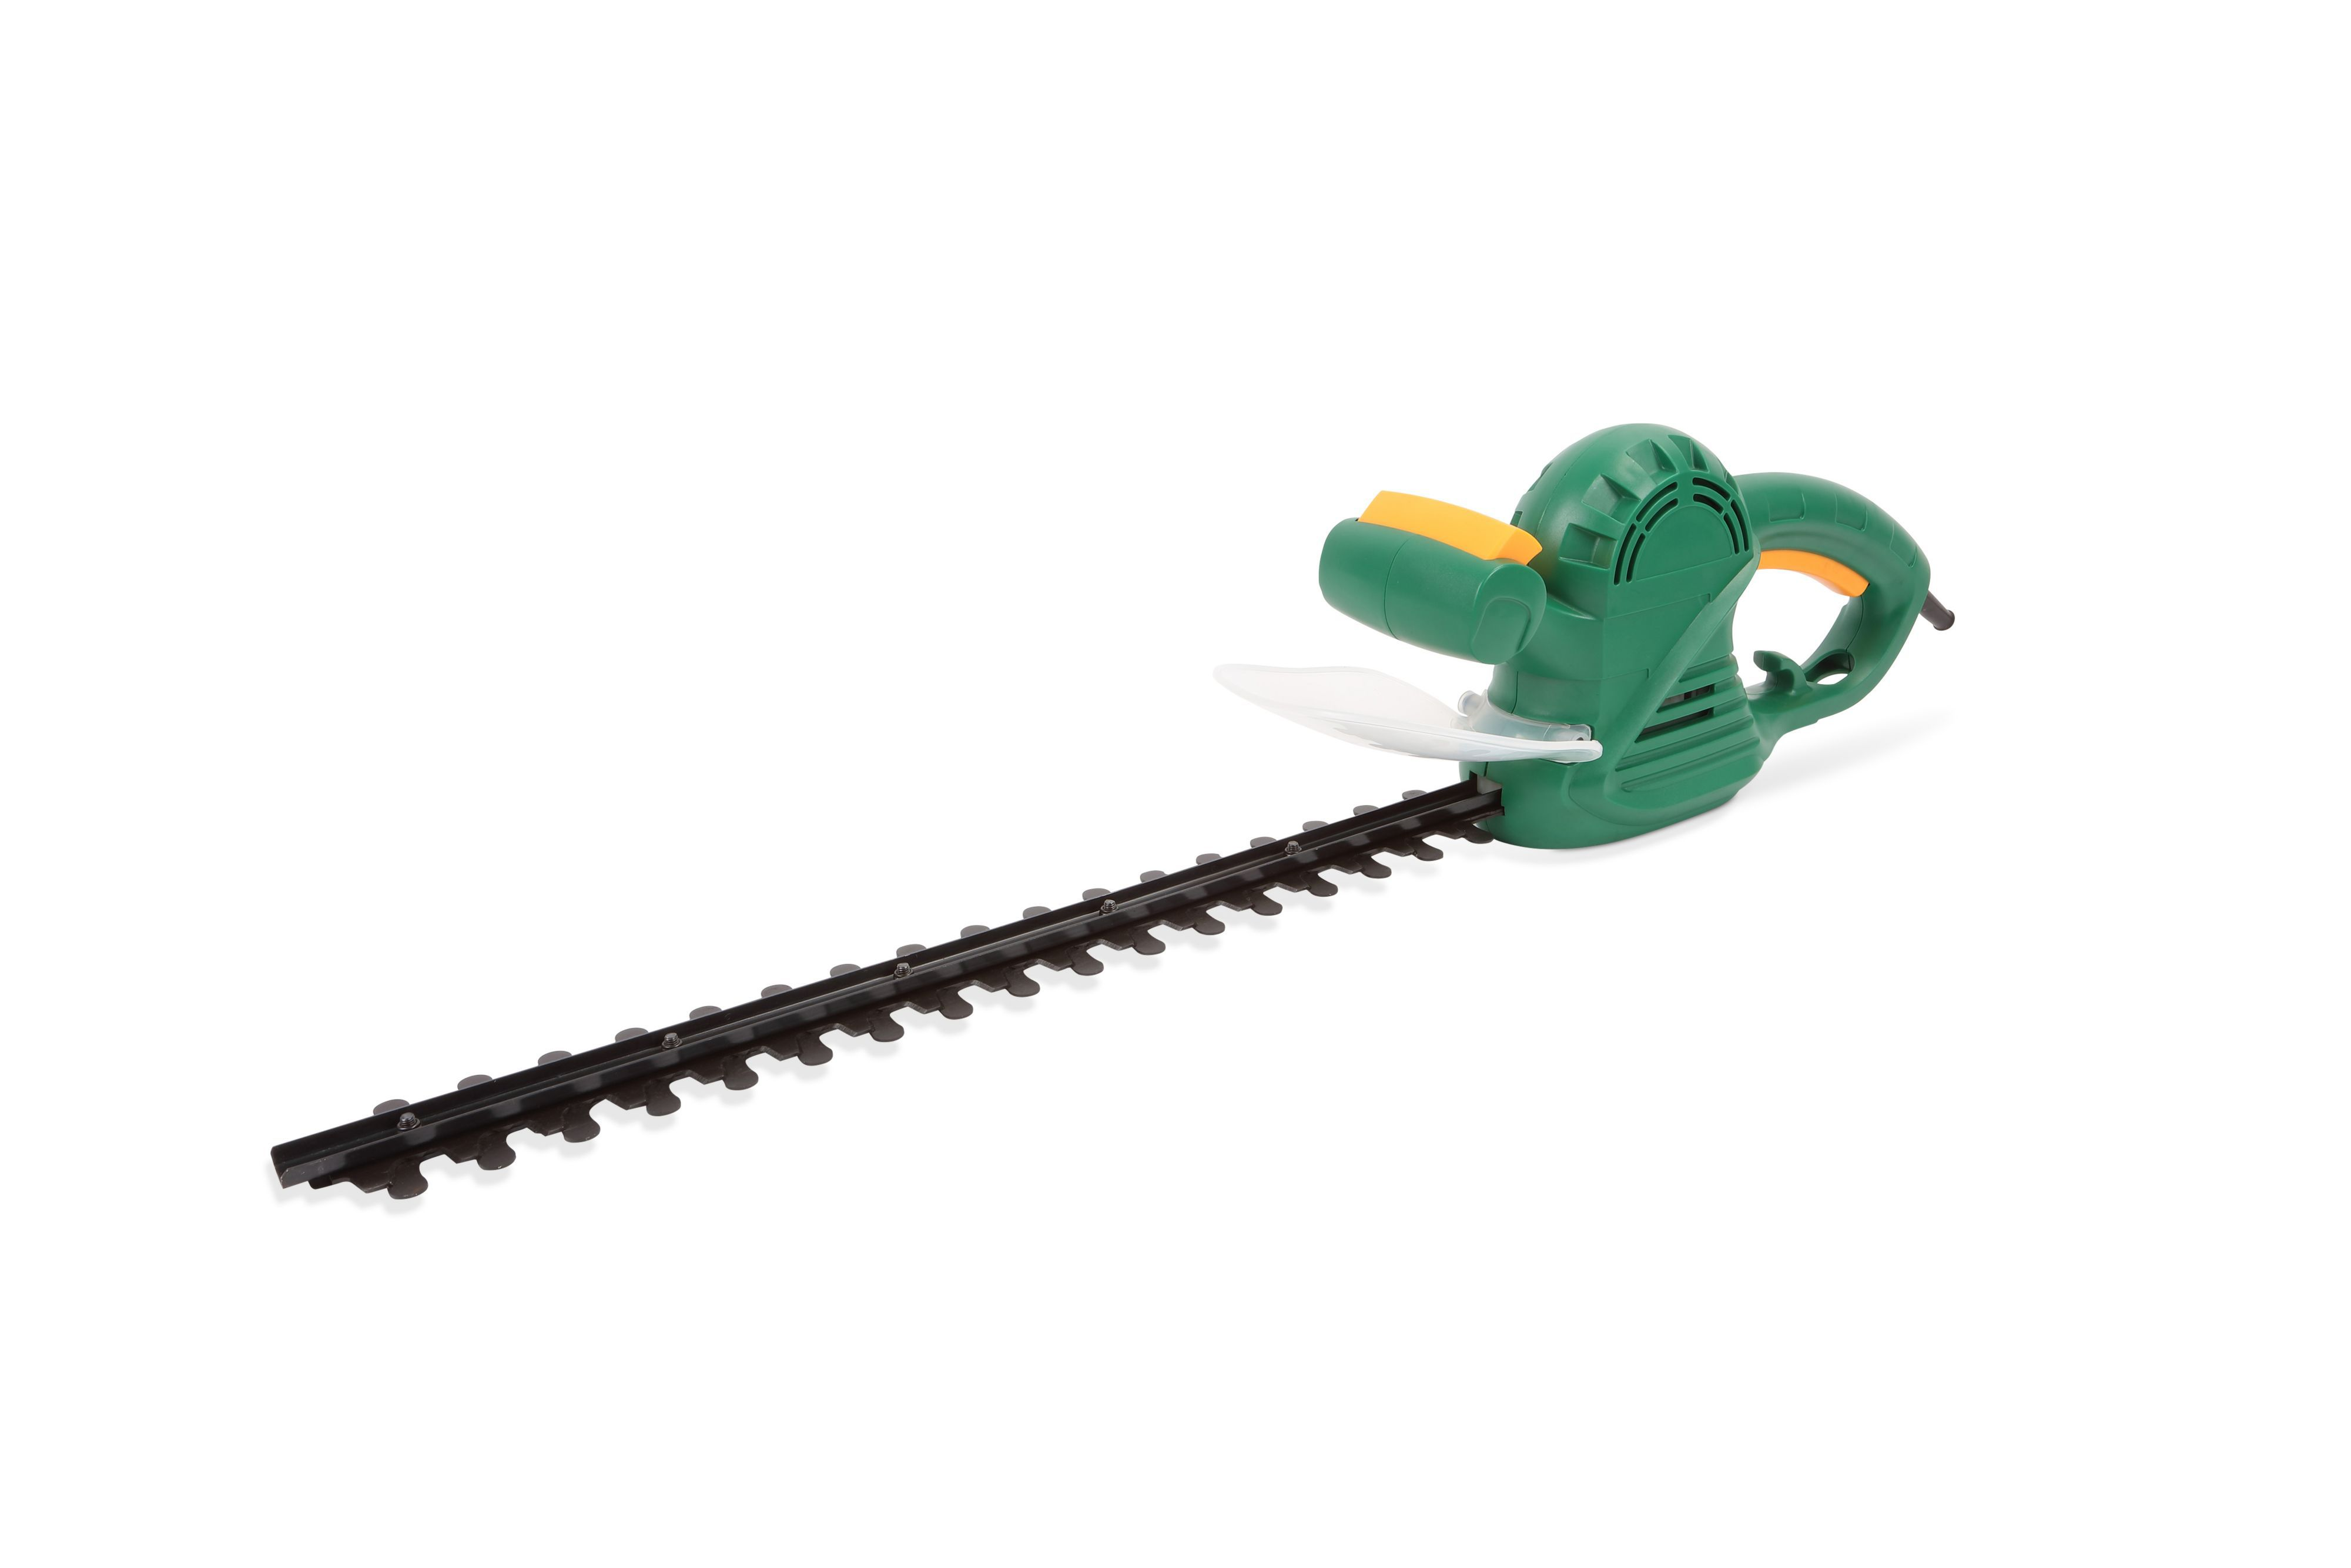 B&q 500 W 460mm Corded Hedge Trimmer